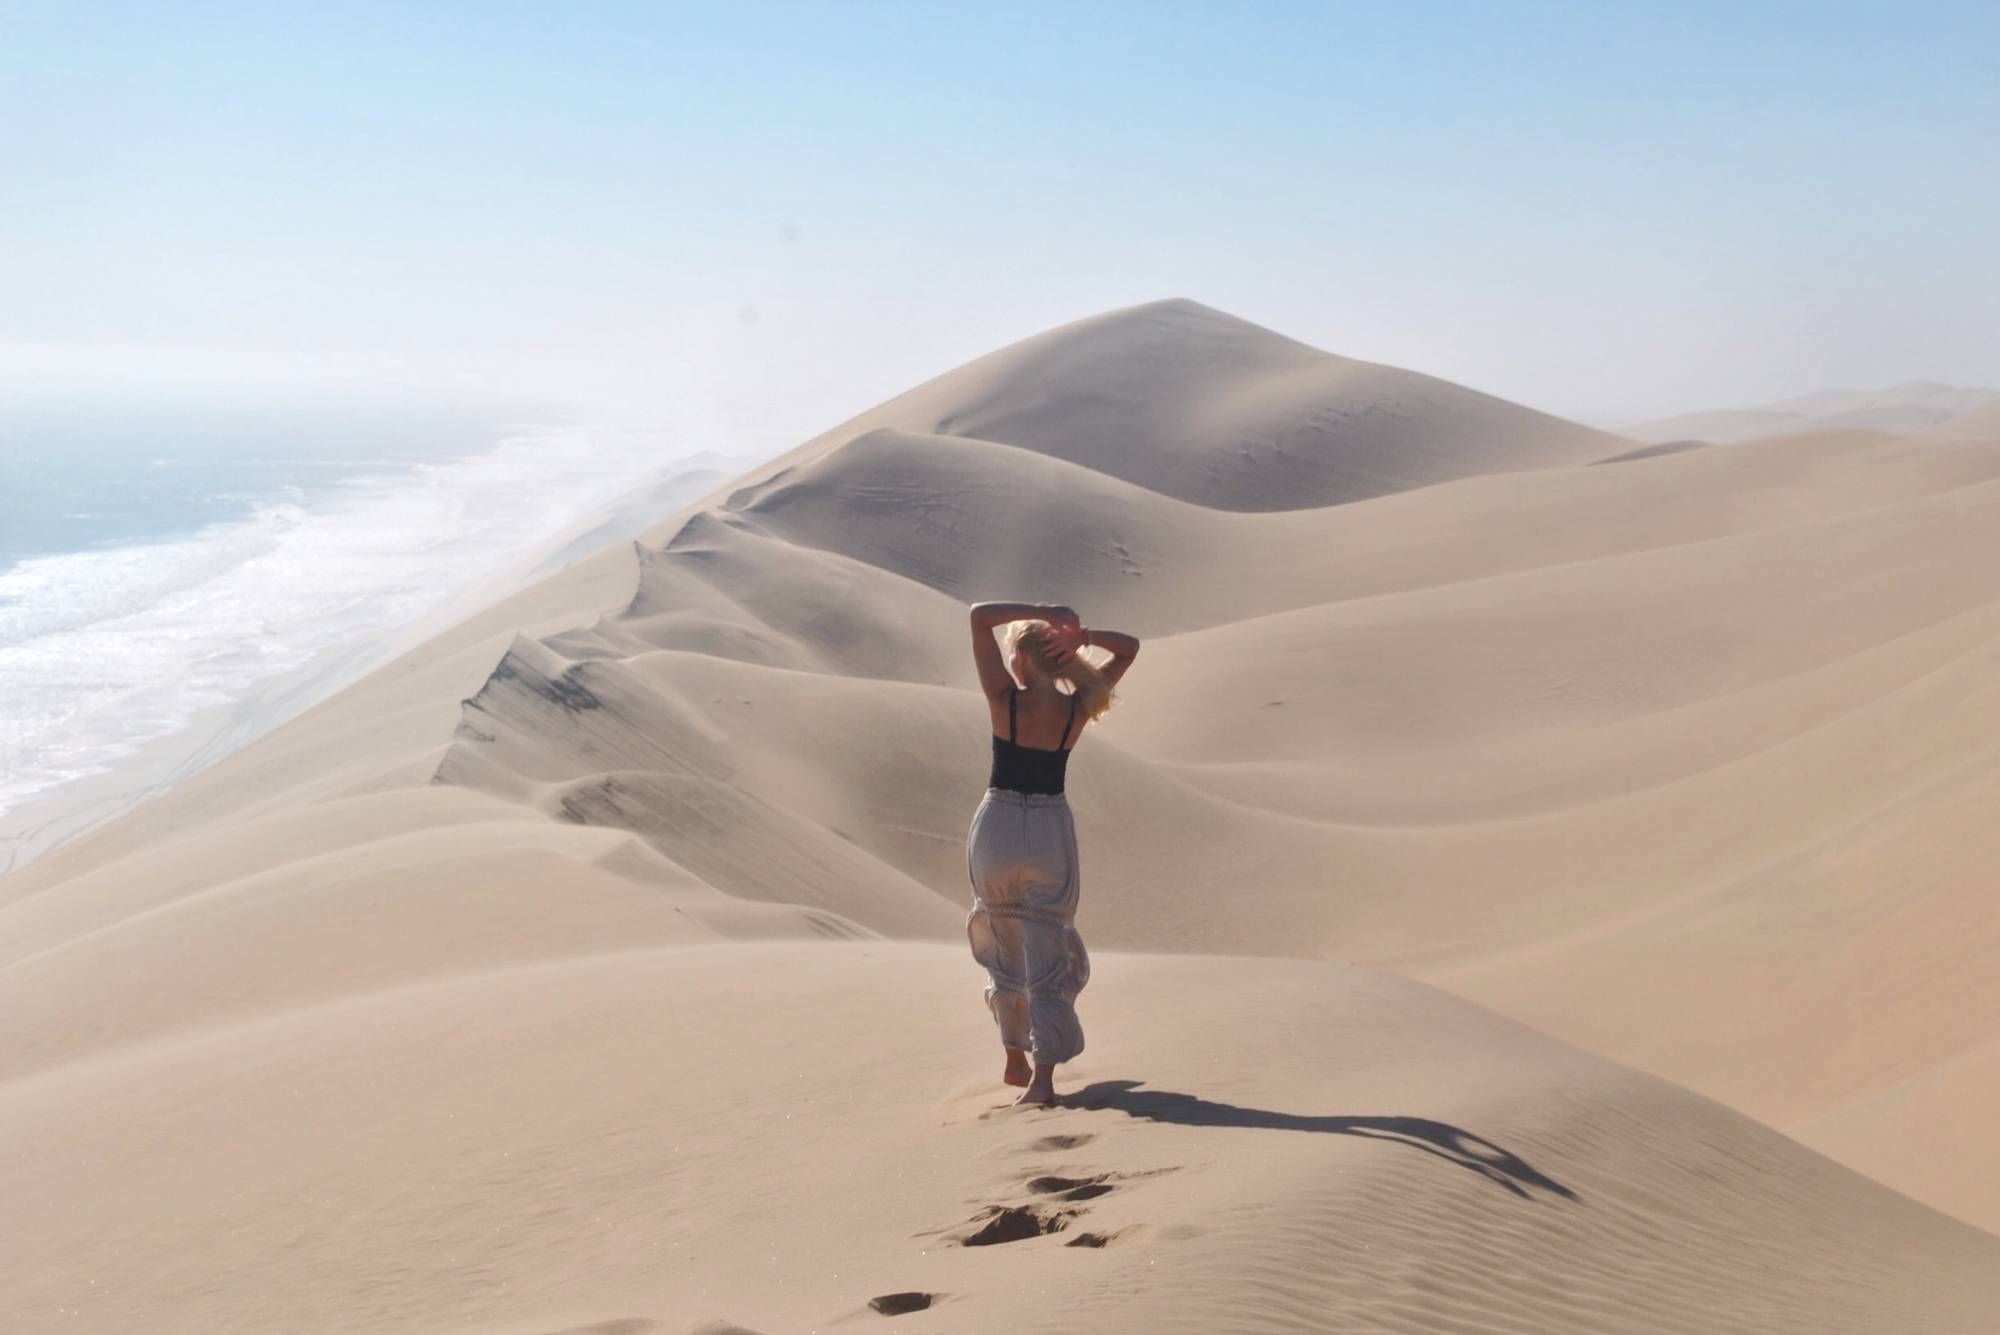 Student standing in the desert in Namibia, Africa